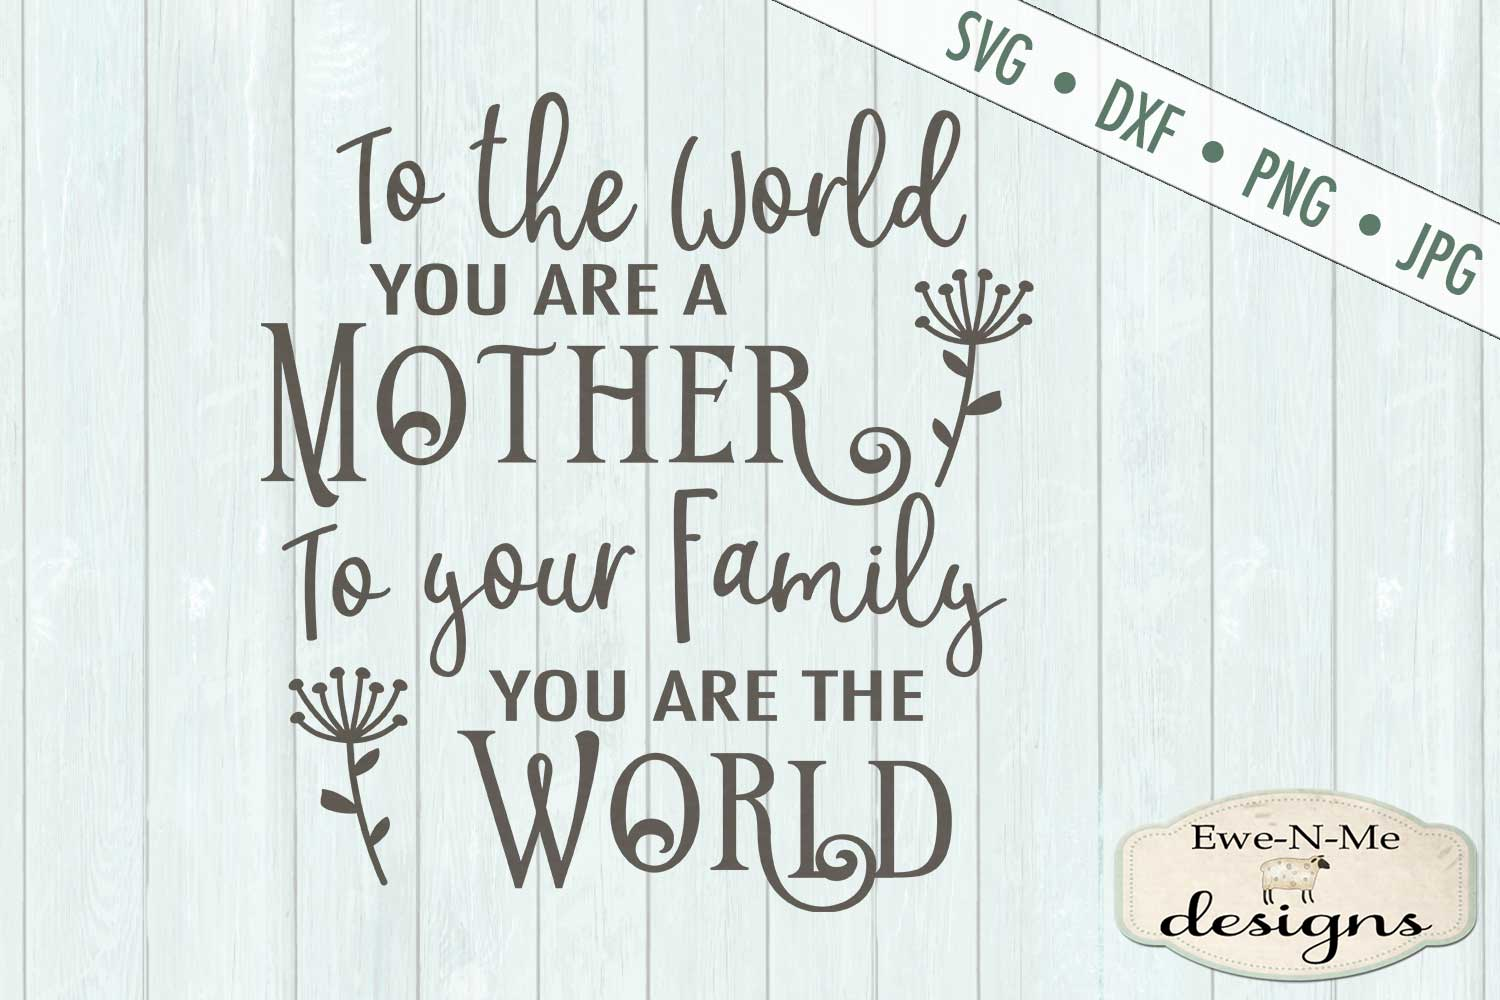 To The World You Are A Mother - Mother's Day - SVG DXF Files example image 2